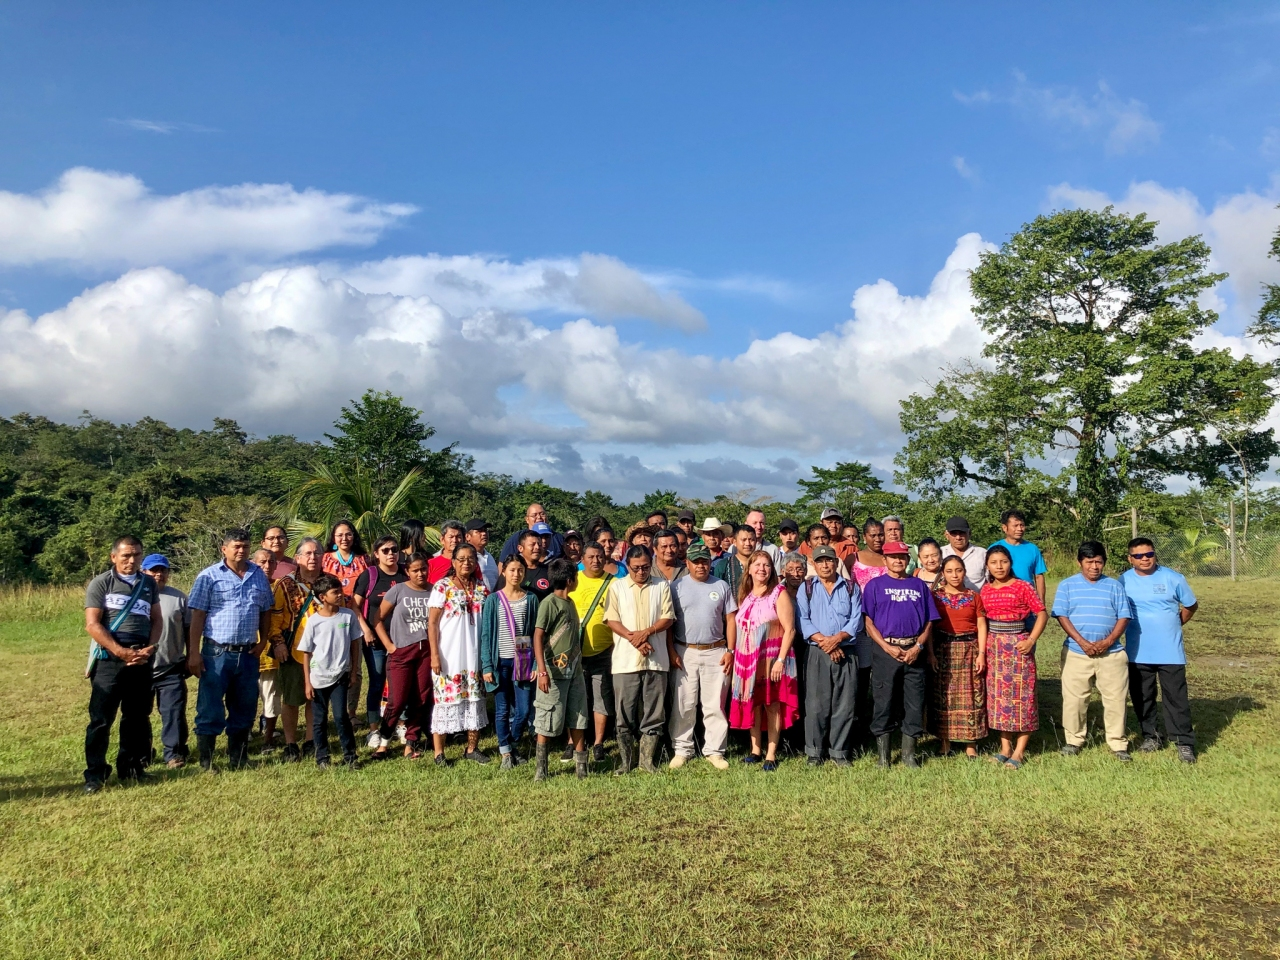 Traditional Native American Farmers Association (TNAFA) Trip to Belize to Connect with Mayan Farmers Part 1: The Uchben Kah Corn Conference